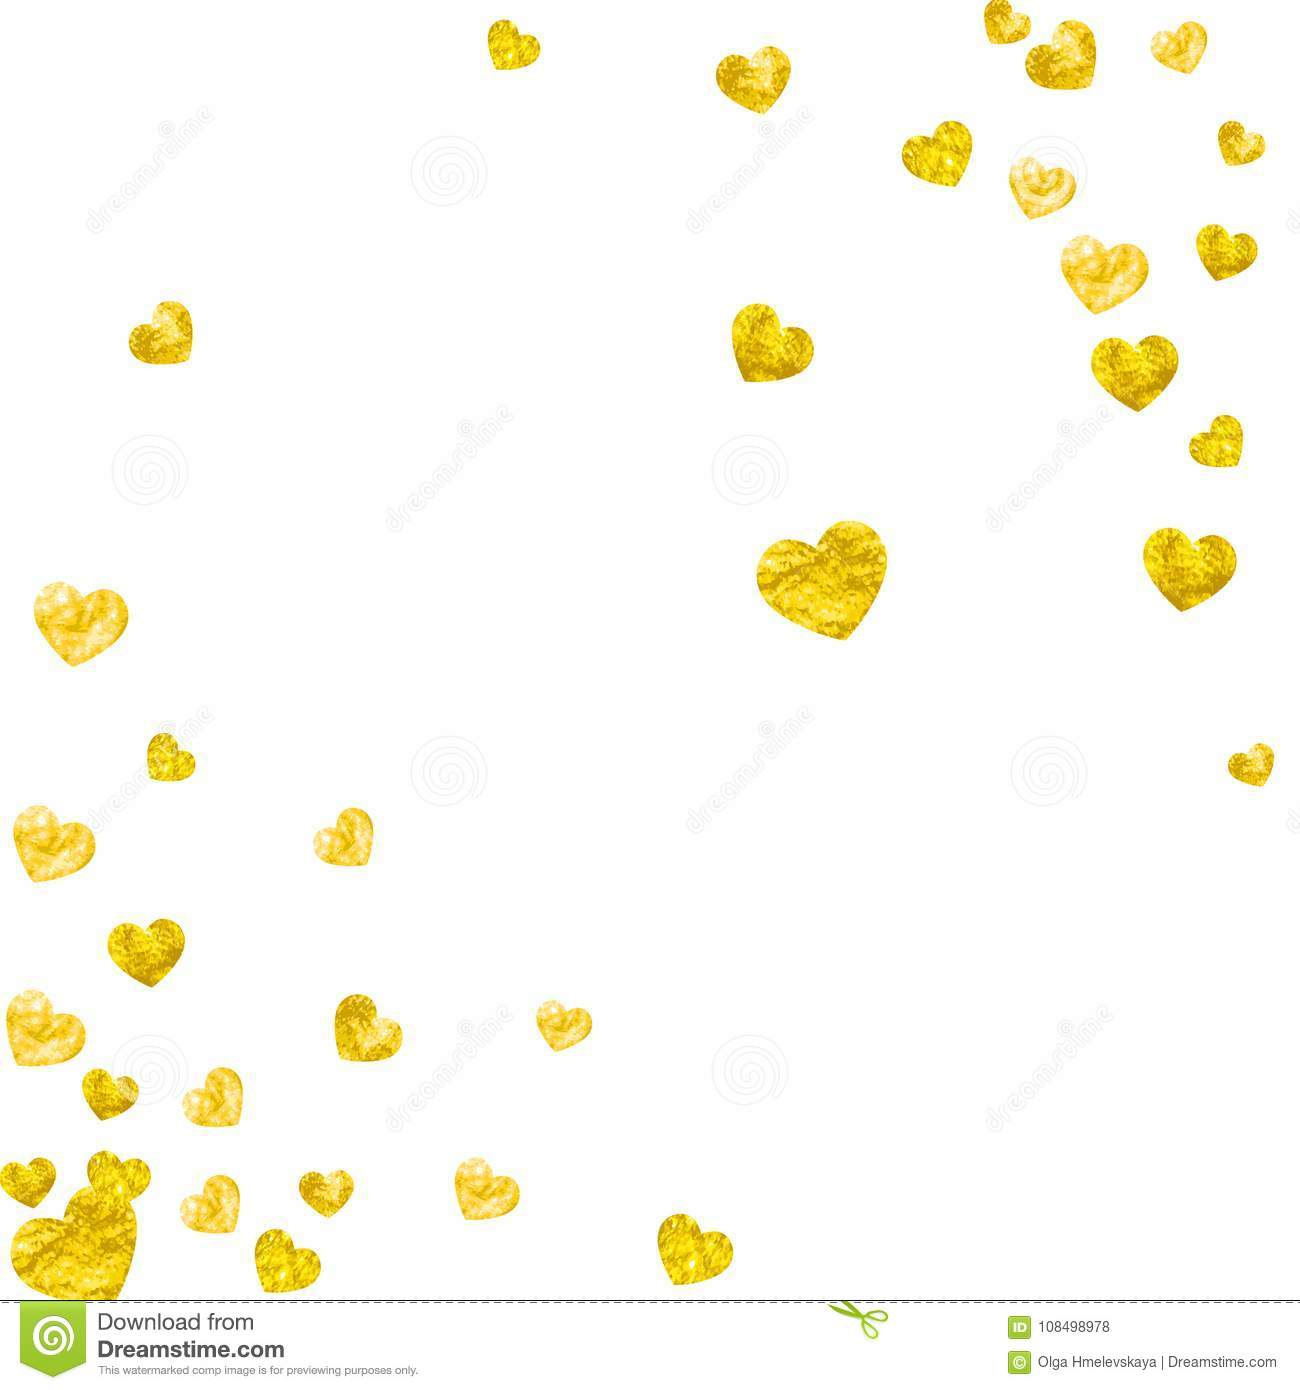 valentine background with gold glitter hearts february 14th day